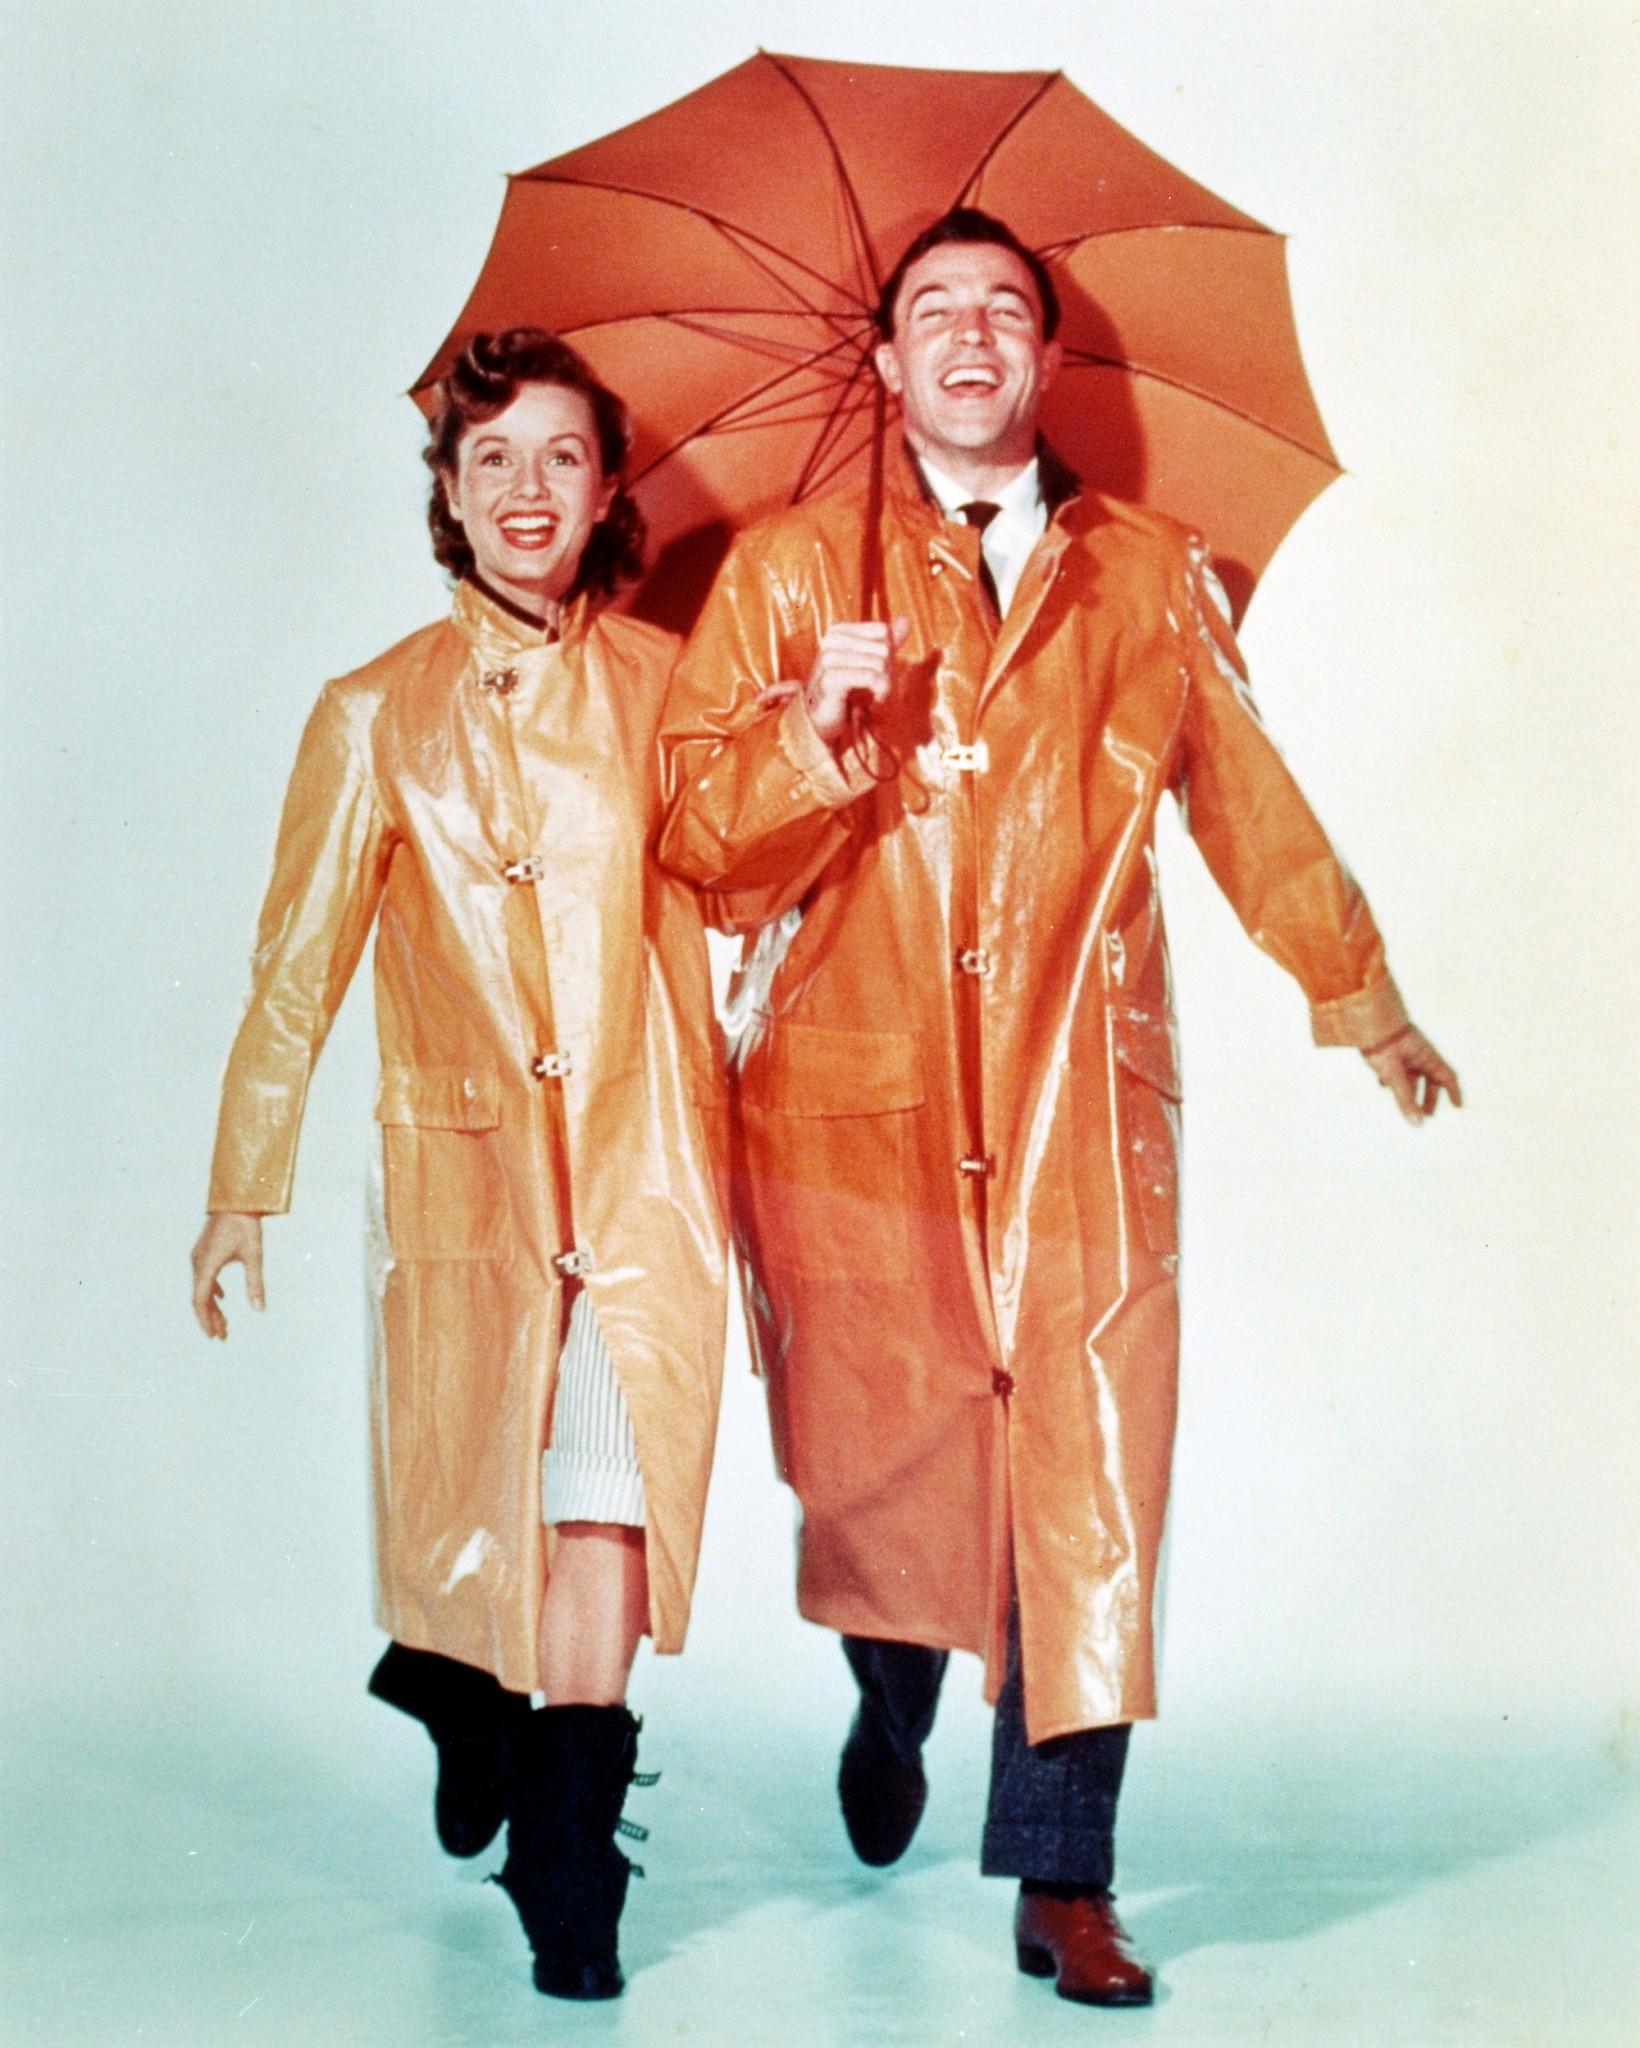 <p>American dancer and actor Gene Kelly as Don Lockwood and Debbie Reynolds as Kathy Seldon in 'Singin' in the Rain', directed by Stanley Donen and Kelly, 1952. (Silver Screen Collection/Hulton Archive/Getty Images) </p>